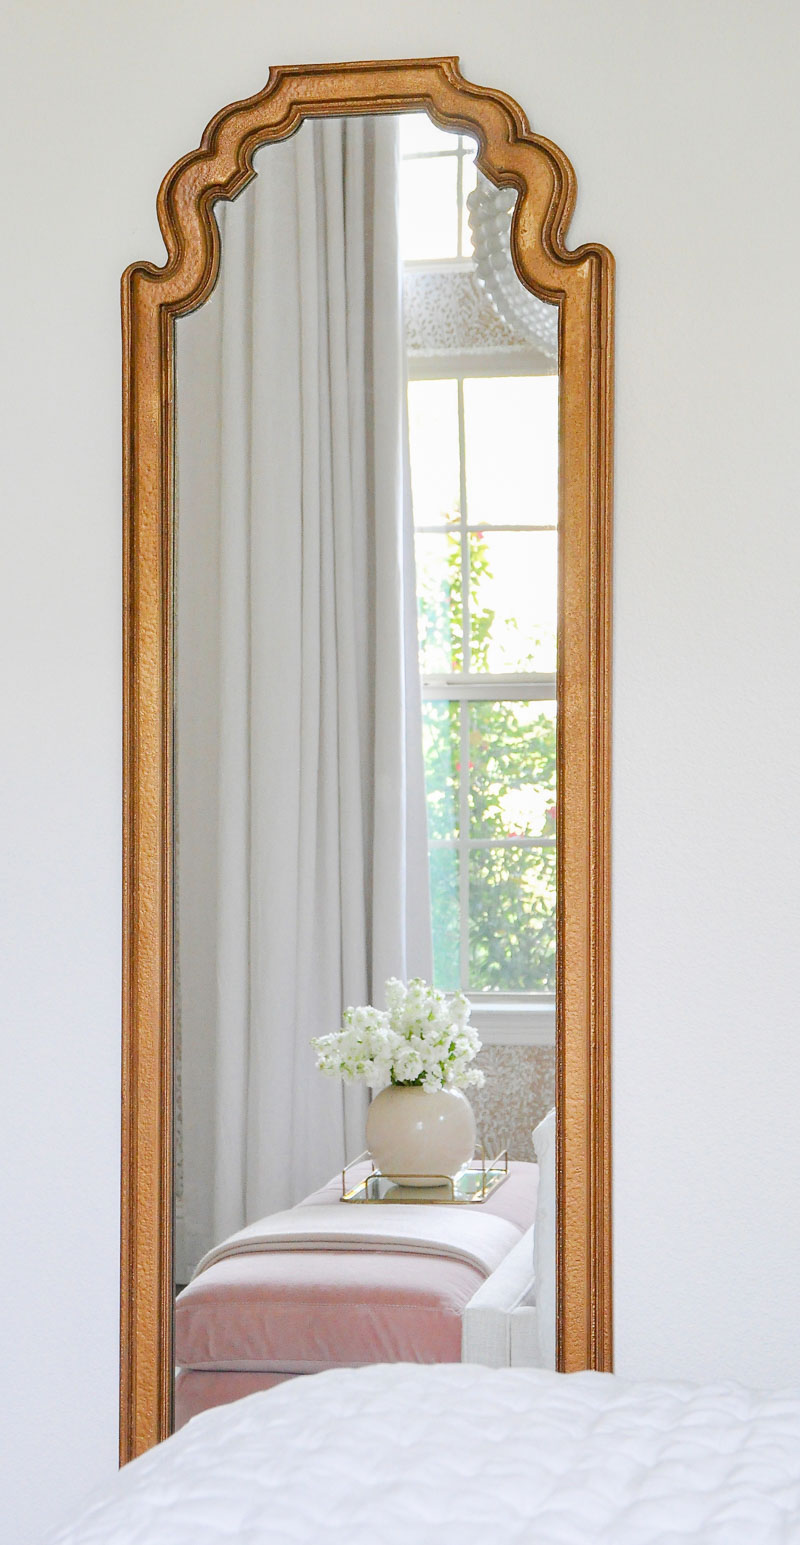 Gold framed guest bedroom mirror